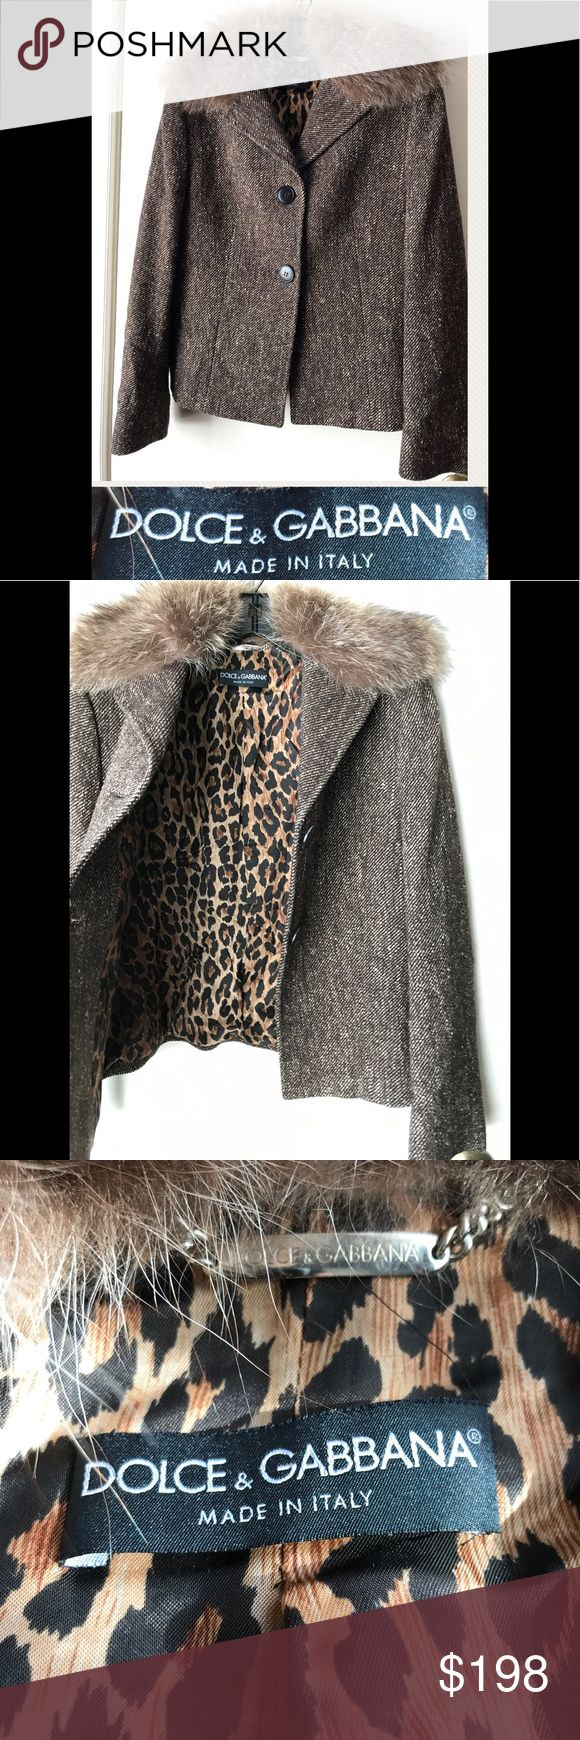 DOLCE & GABANA Jacket Brown Size M Fur Collar Awesome DOLCE & GABANA brown tweed jacket in a European size 42 or US medium. Features genuine fur collar with leopard print lining. Cool and classic! Dolce & Gabbana Jackets & Coats Blazers